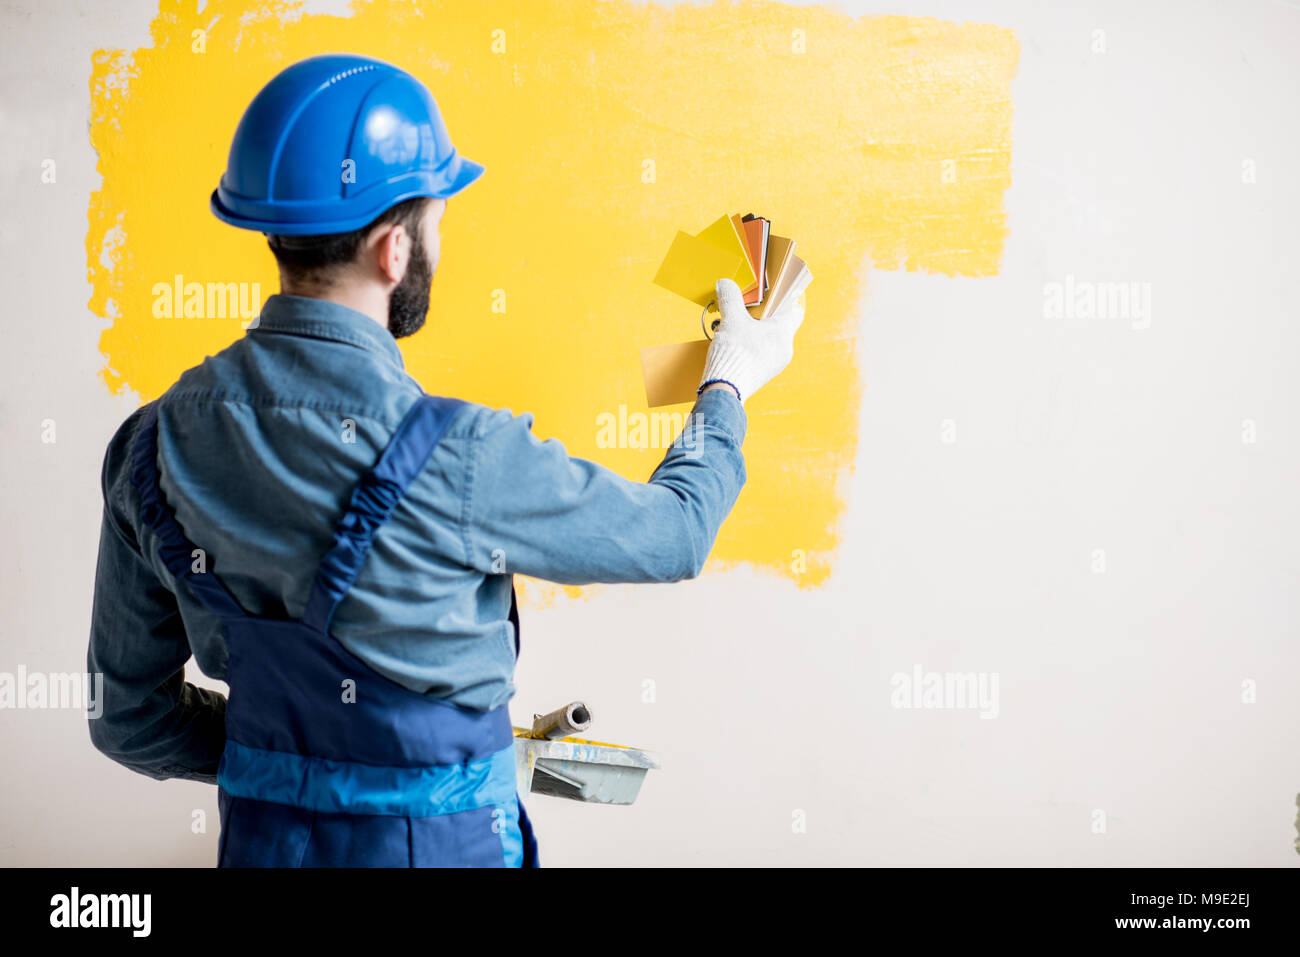 Painter comparing colors - Stock Image